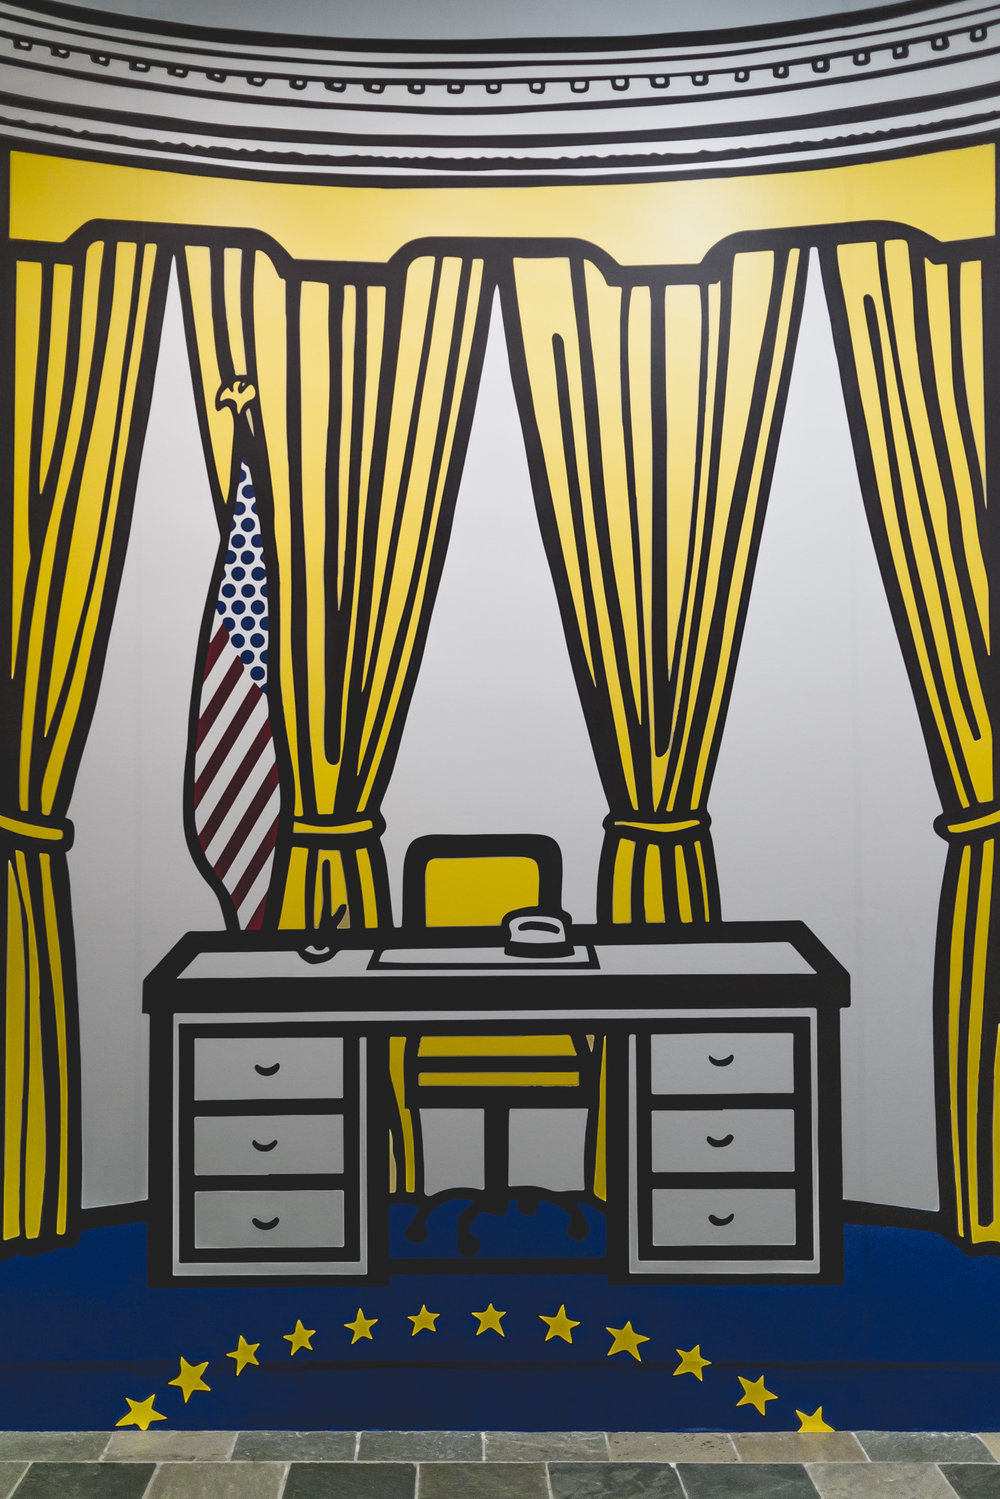 MYBELONGING-SKIRBALL-CULTURAL-CENTER-LOS-ANGELES-ROY-LICHTENSTEIN-POPFORTHEPEOPLE-EXHIBIT-5.jpg